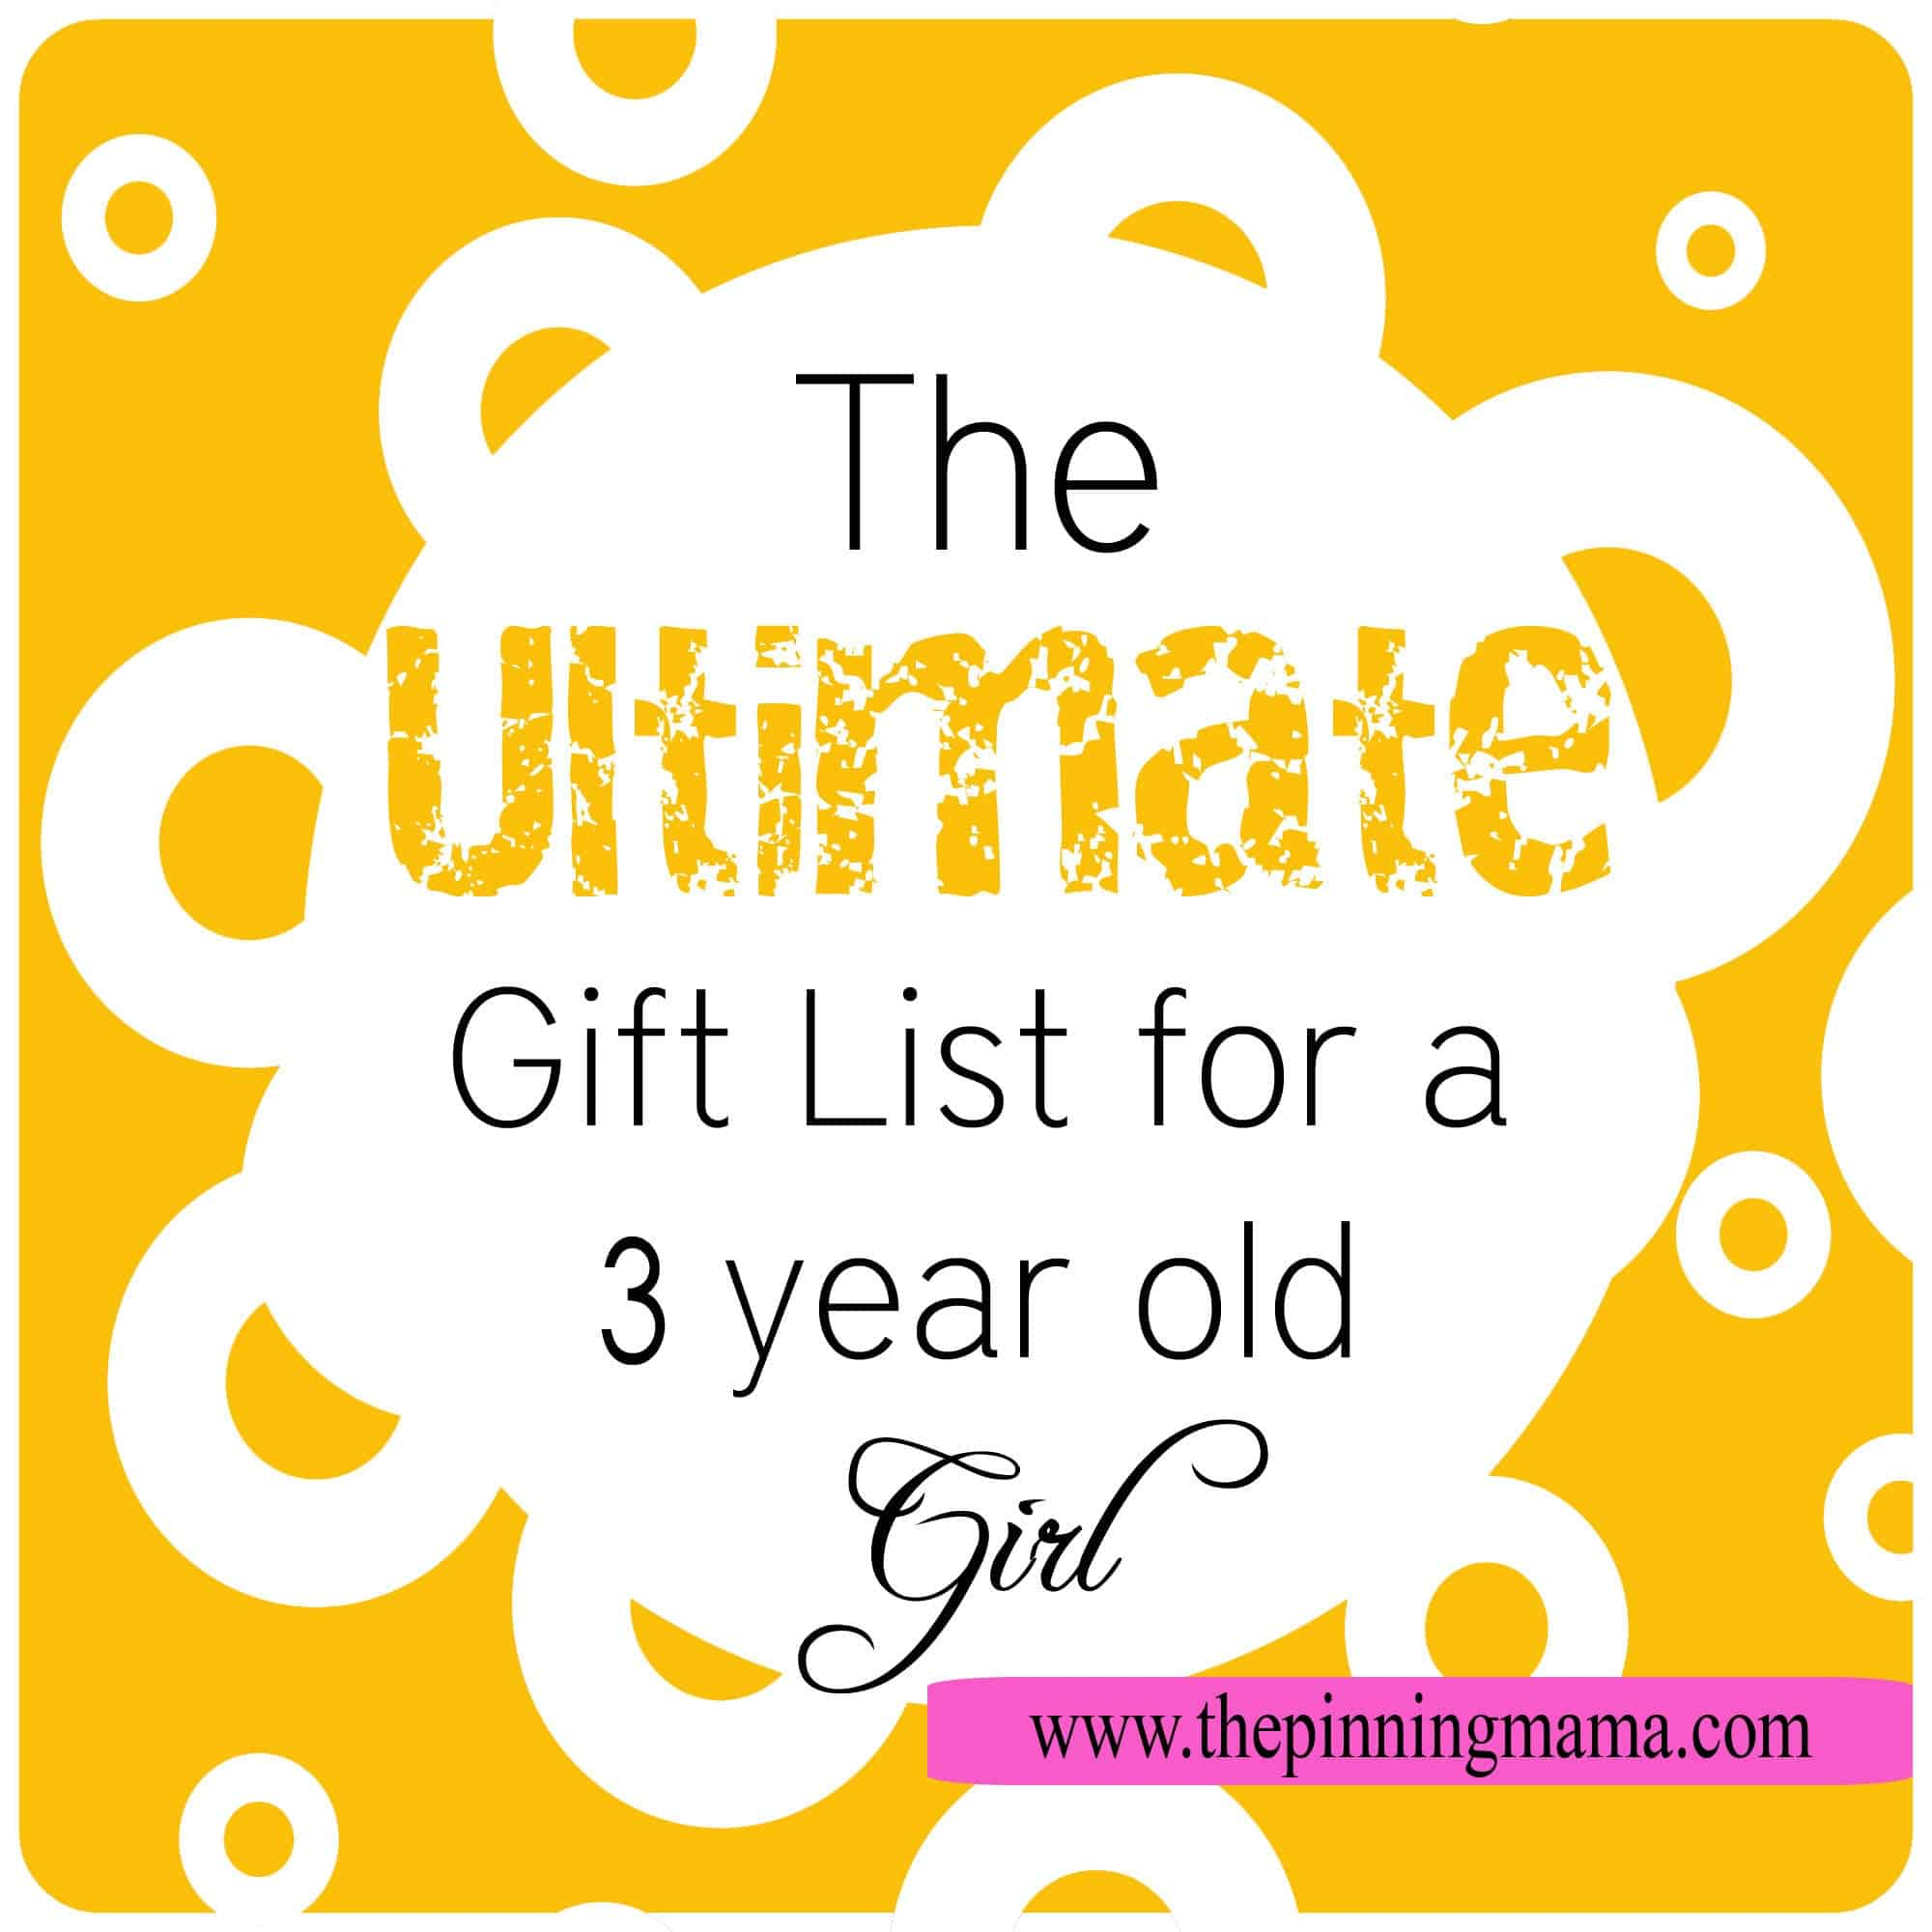 the ultimate gift list for a 3 year old girl by wwwthepinningmamacom